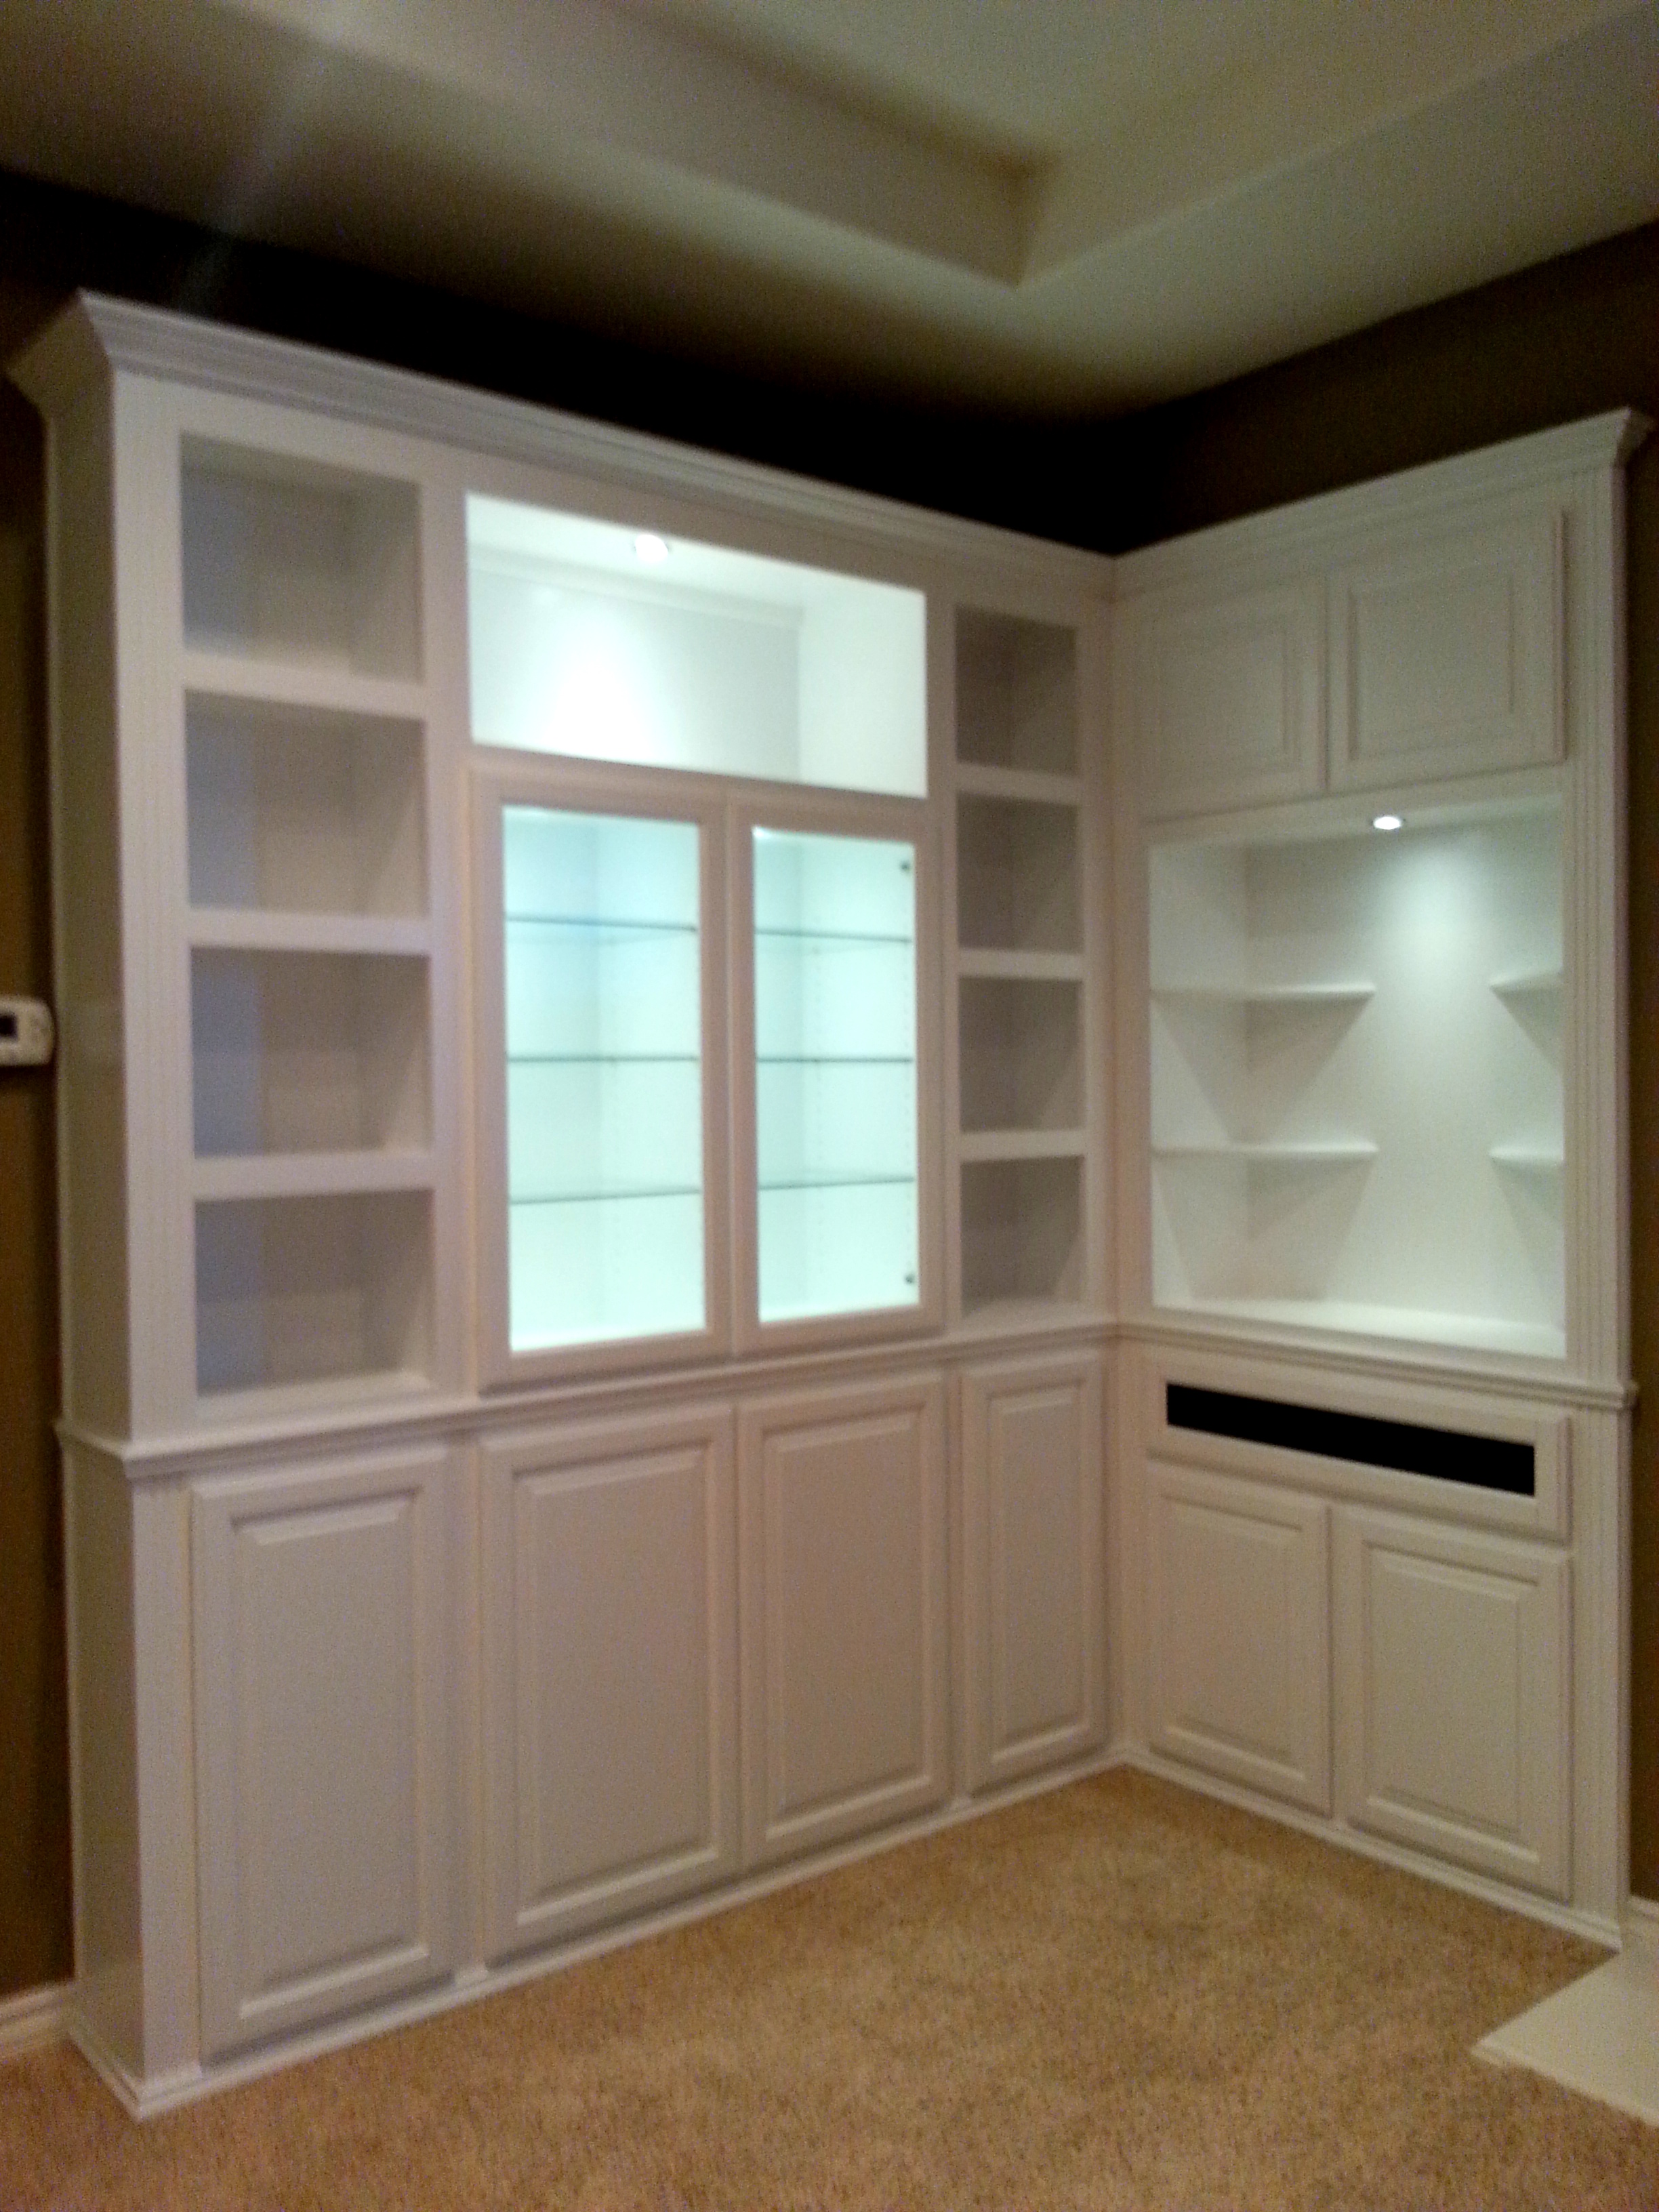 Built in white corner cabinets  C  L Design Specialists Inc